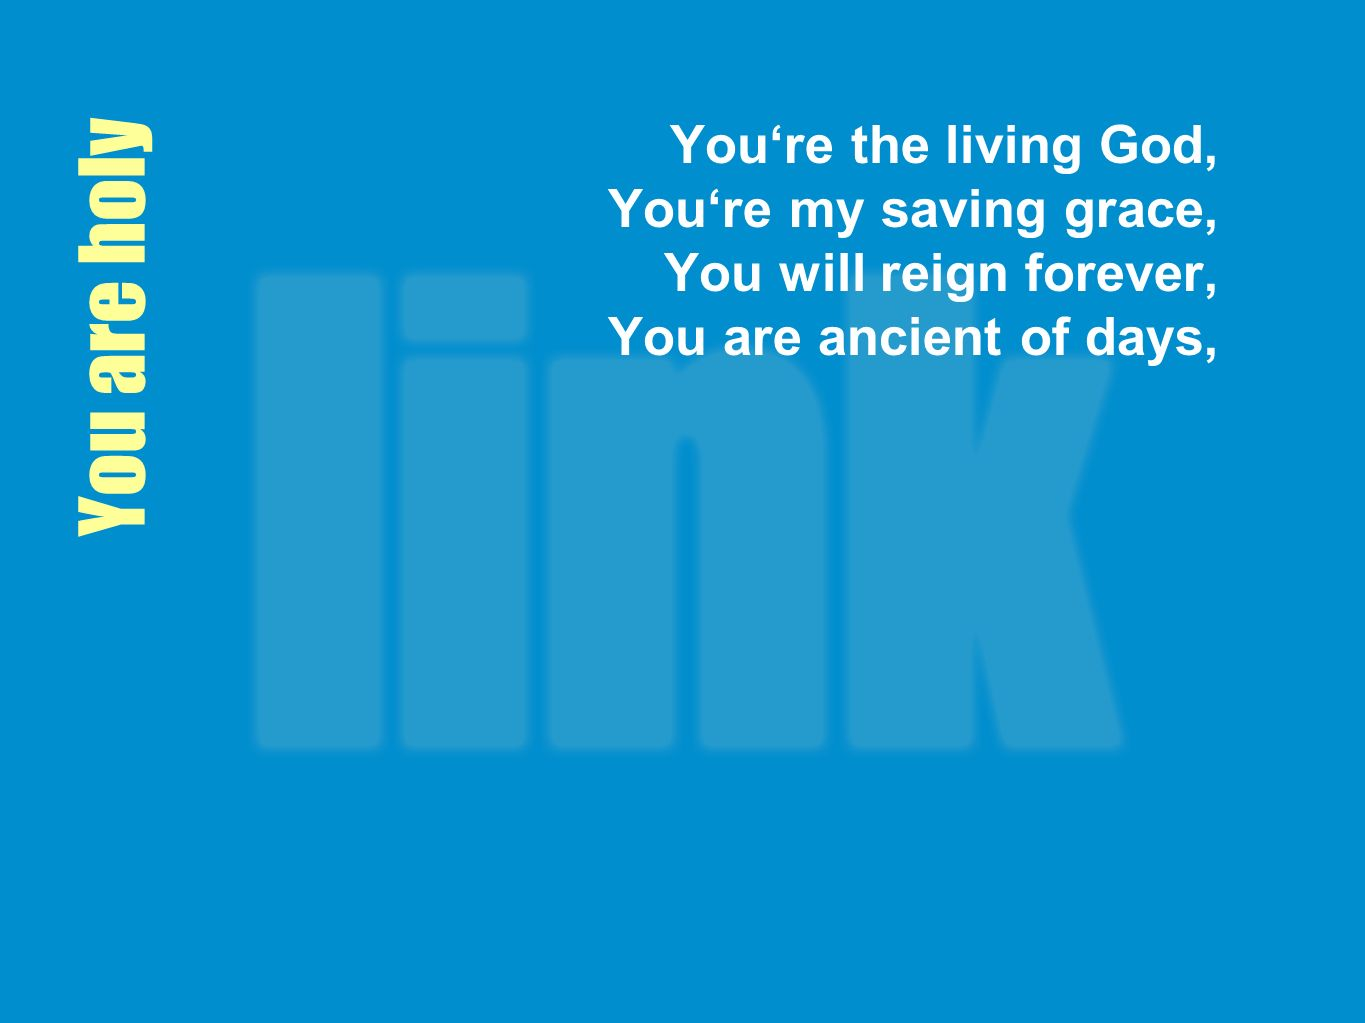 You're the living God, You're my saving grace, You will reign forever, You are ancient of days,